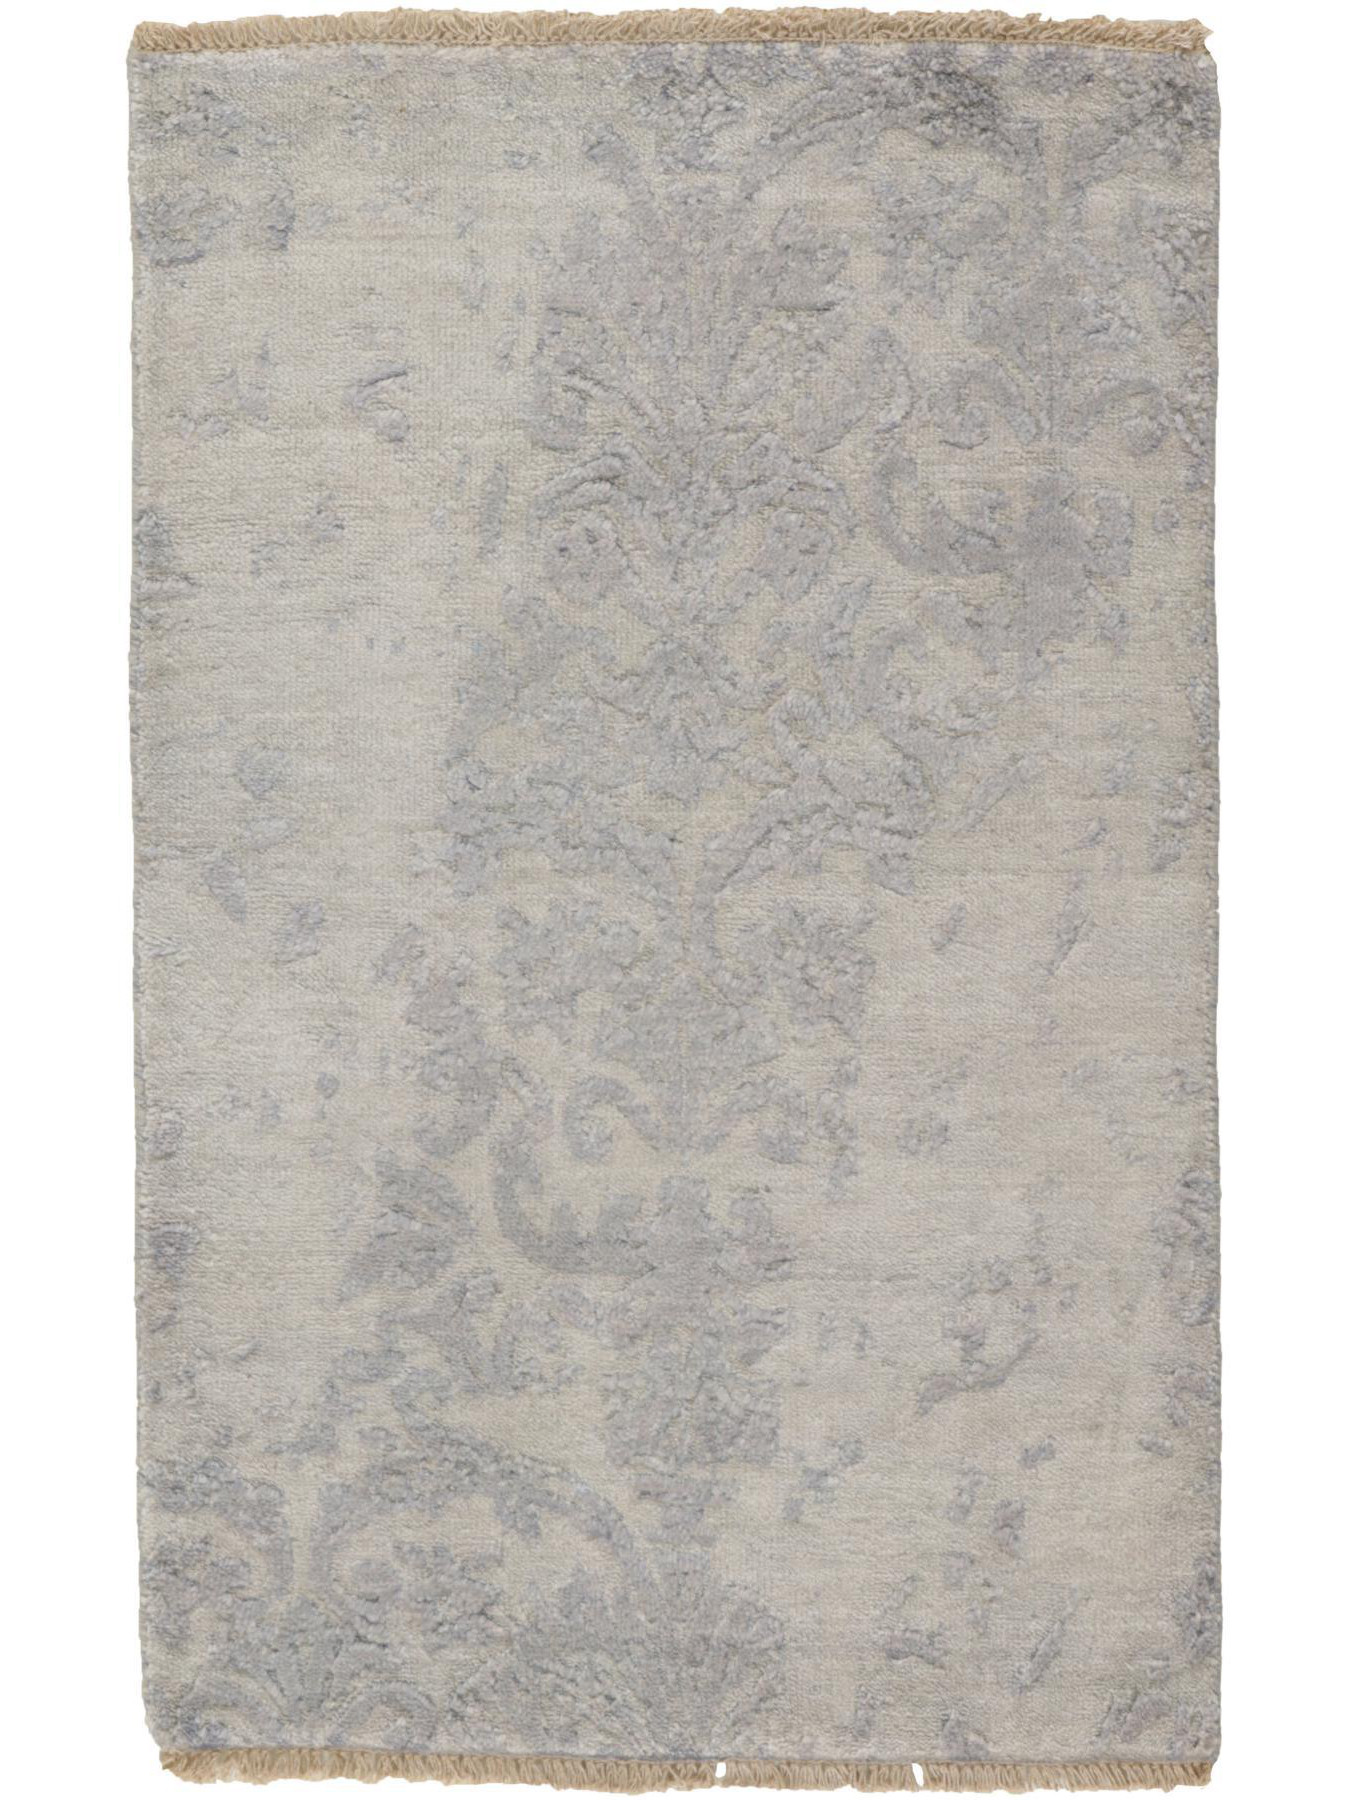 Luxury tapijten - Damask-AL-2E B-14/B-15